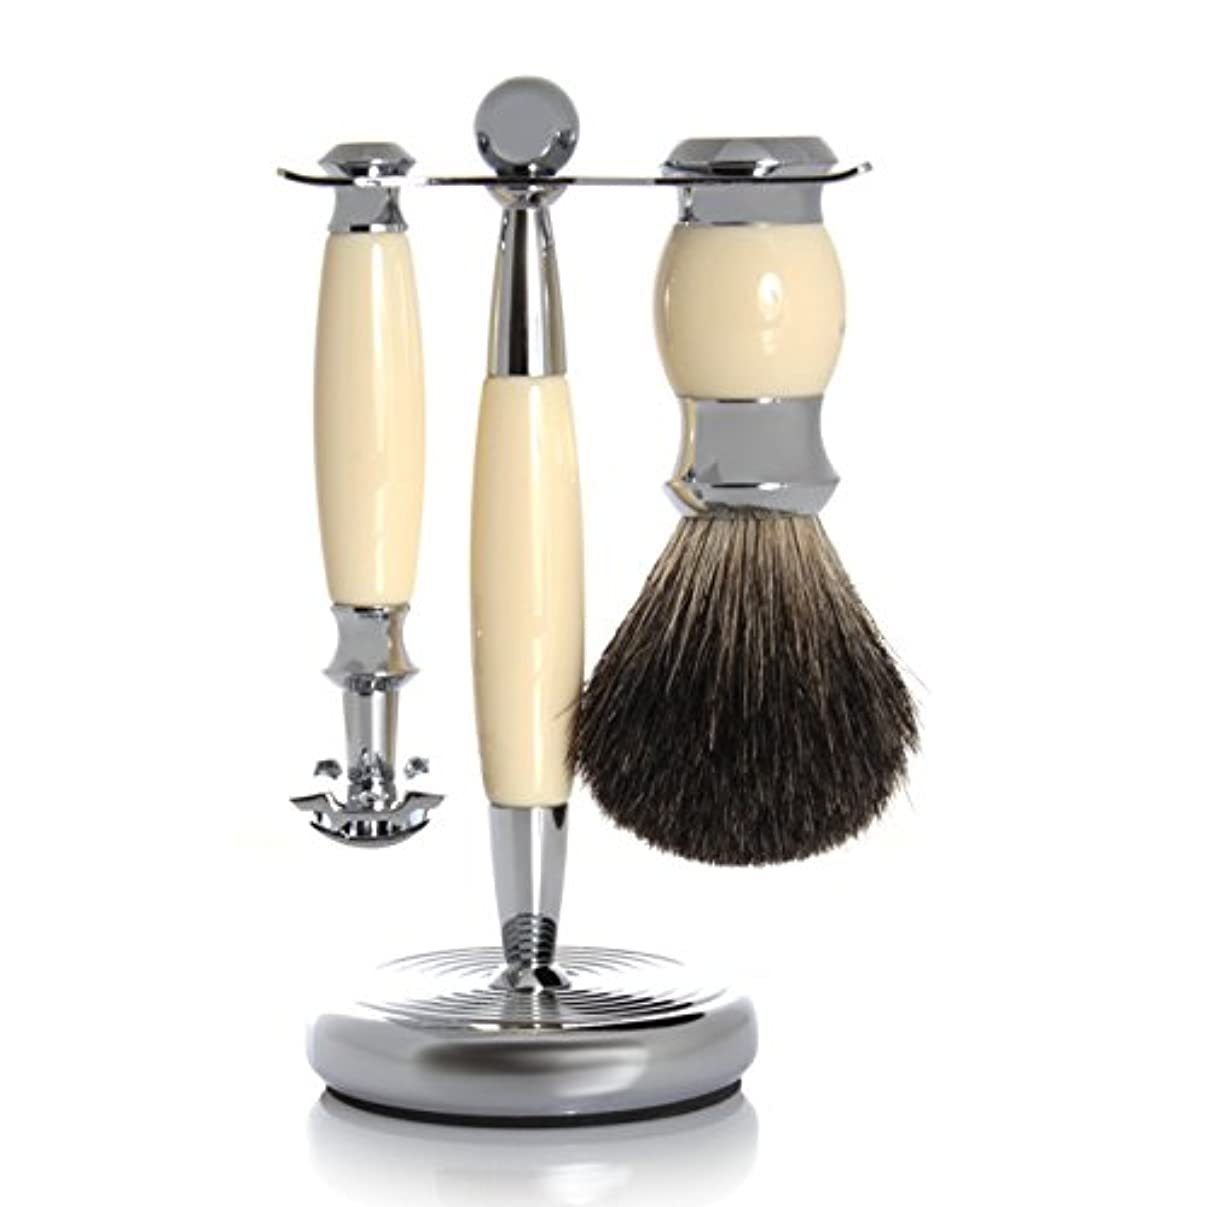 脈拍故意の姿勢GOLDDACHS Shaving Set, Safety Razor, 100% badger hair, white/silver